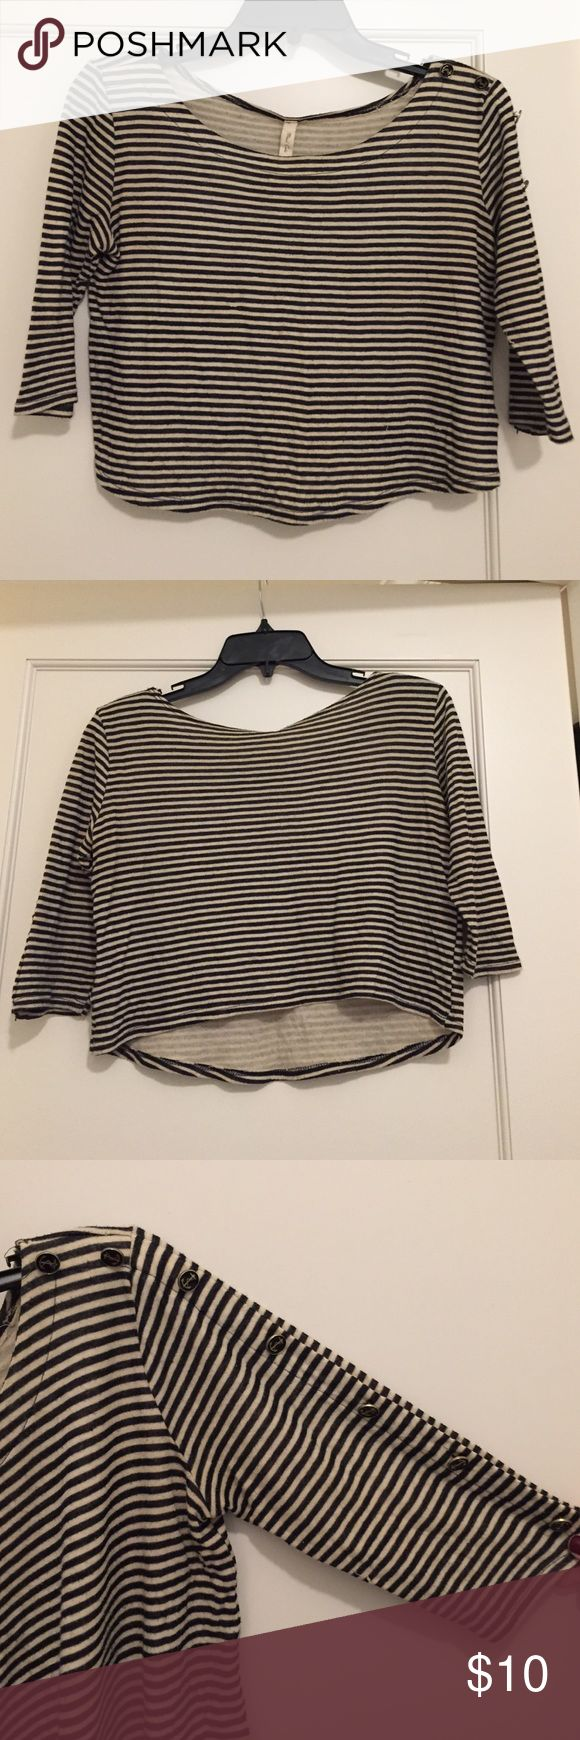 Striped crop top with buttons Cream and black striped crop top with anchor buttons down left sleeve. Super soft, loose fitting Tops Crop Tops